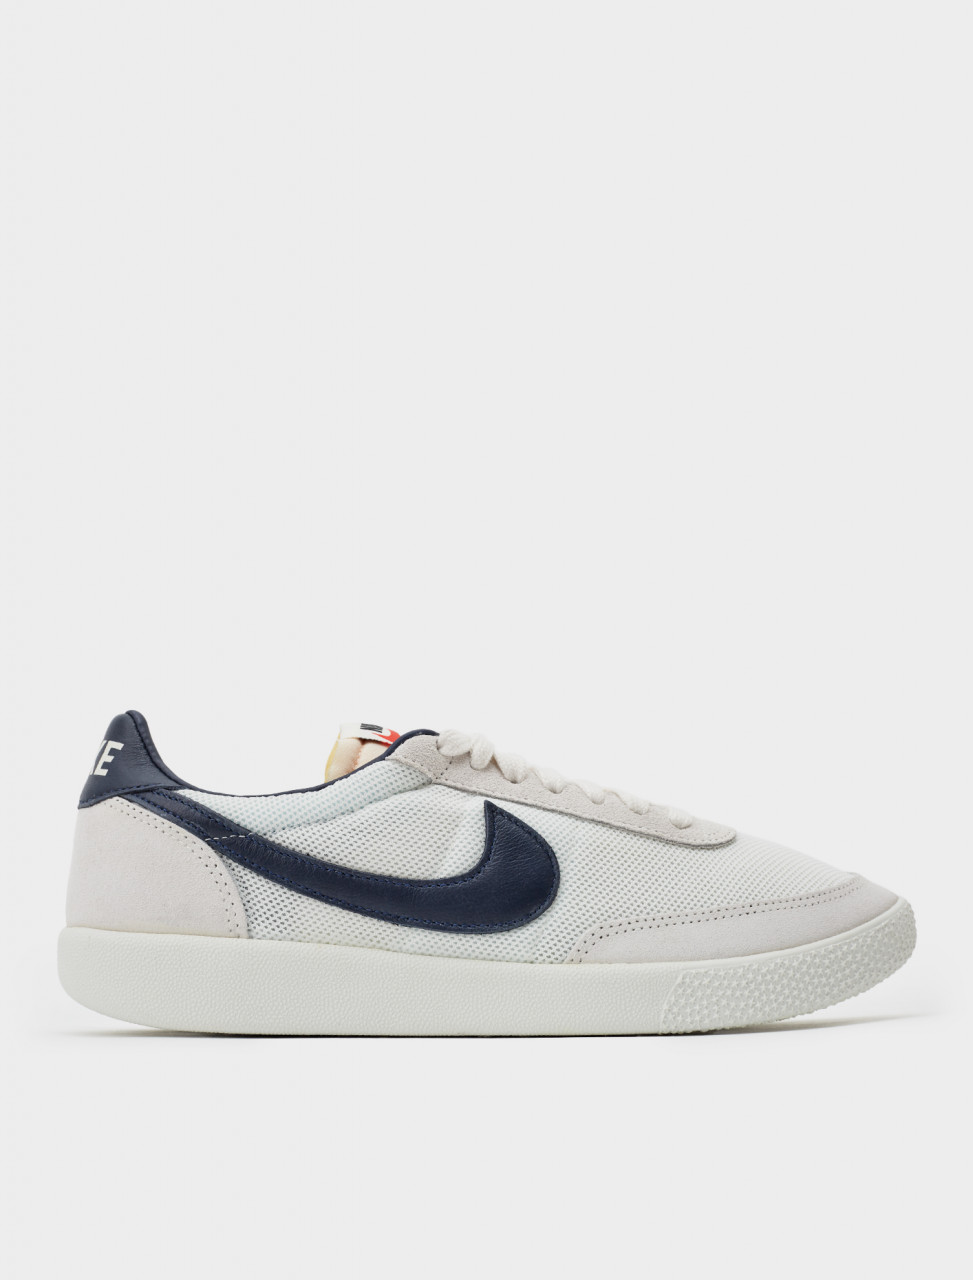 Side view of Killshot OG SP Sneaker in Sail and Midnight Navy